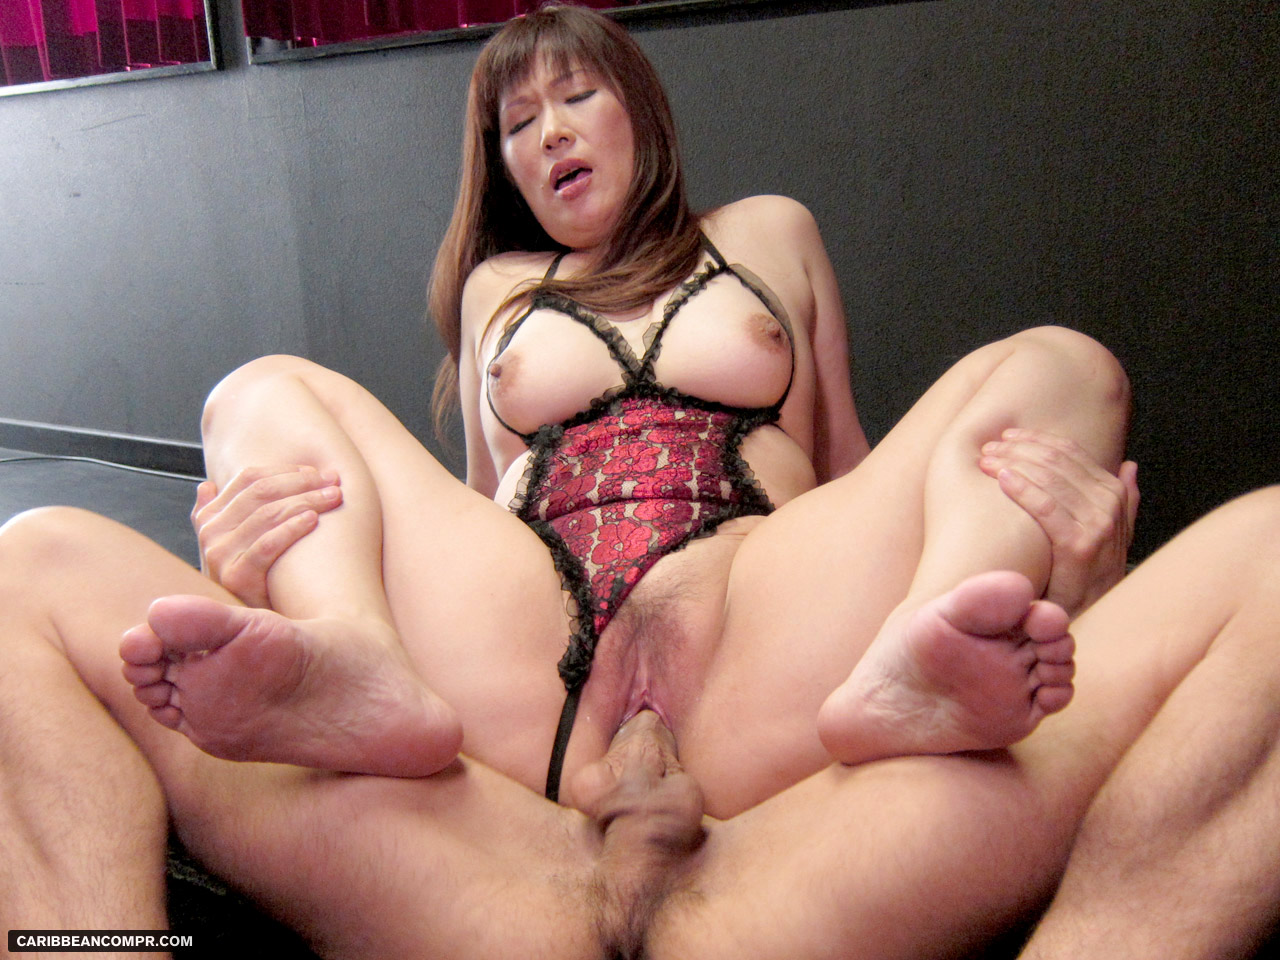 Experienced ladyboy amy amour with another customer